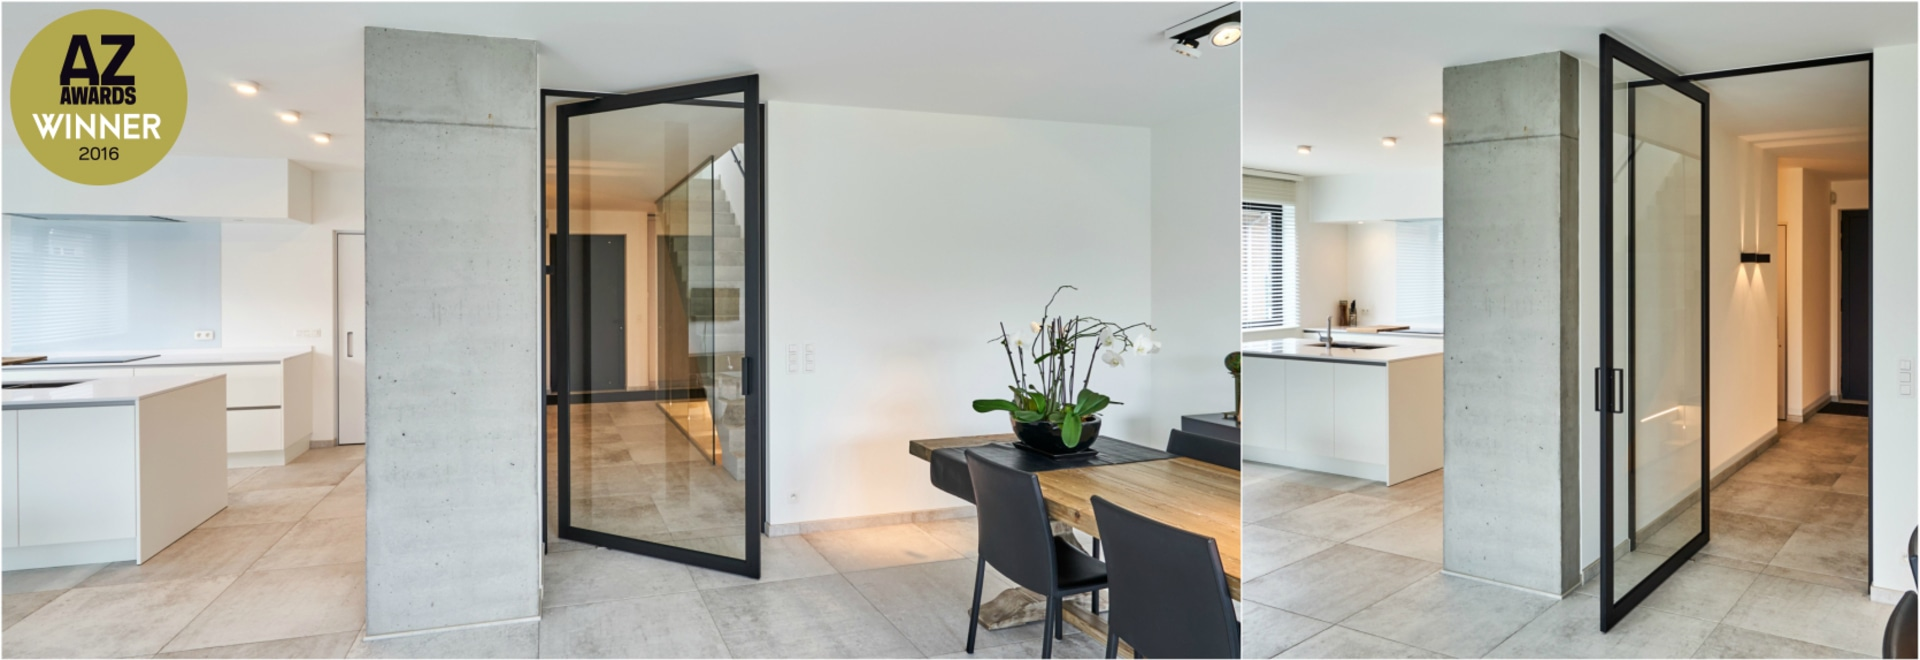 Pivoting room dividers